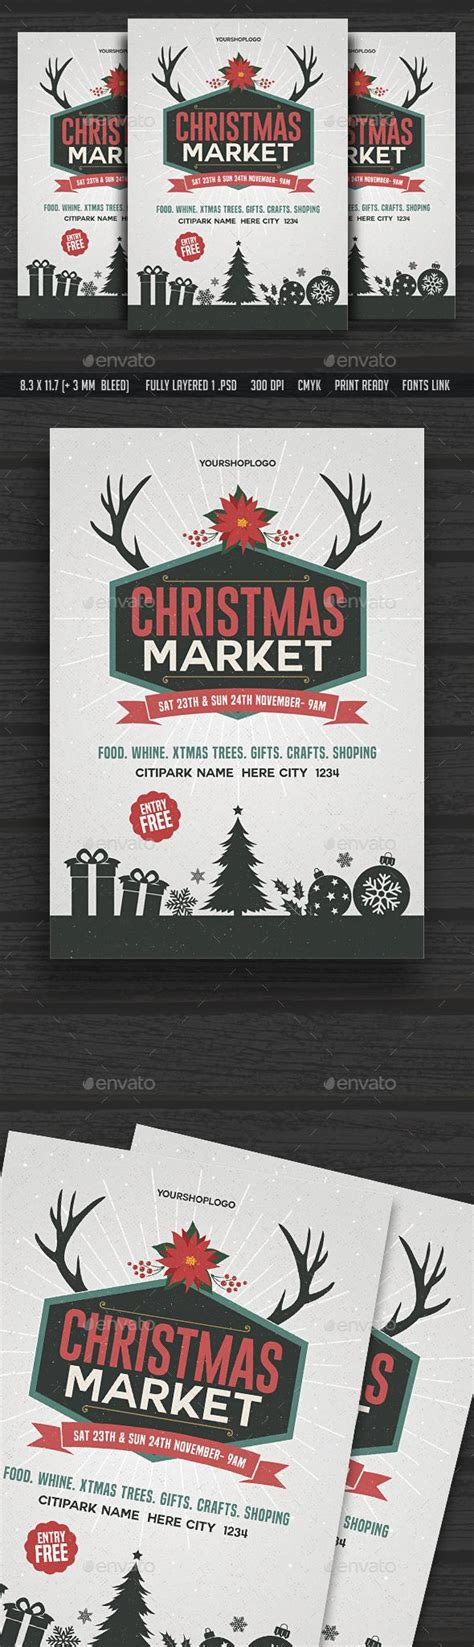 design xmas poster 1000 ideas about christmas poster on pinterest graphic